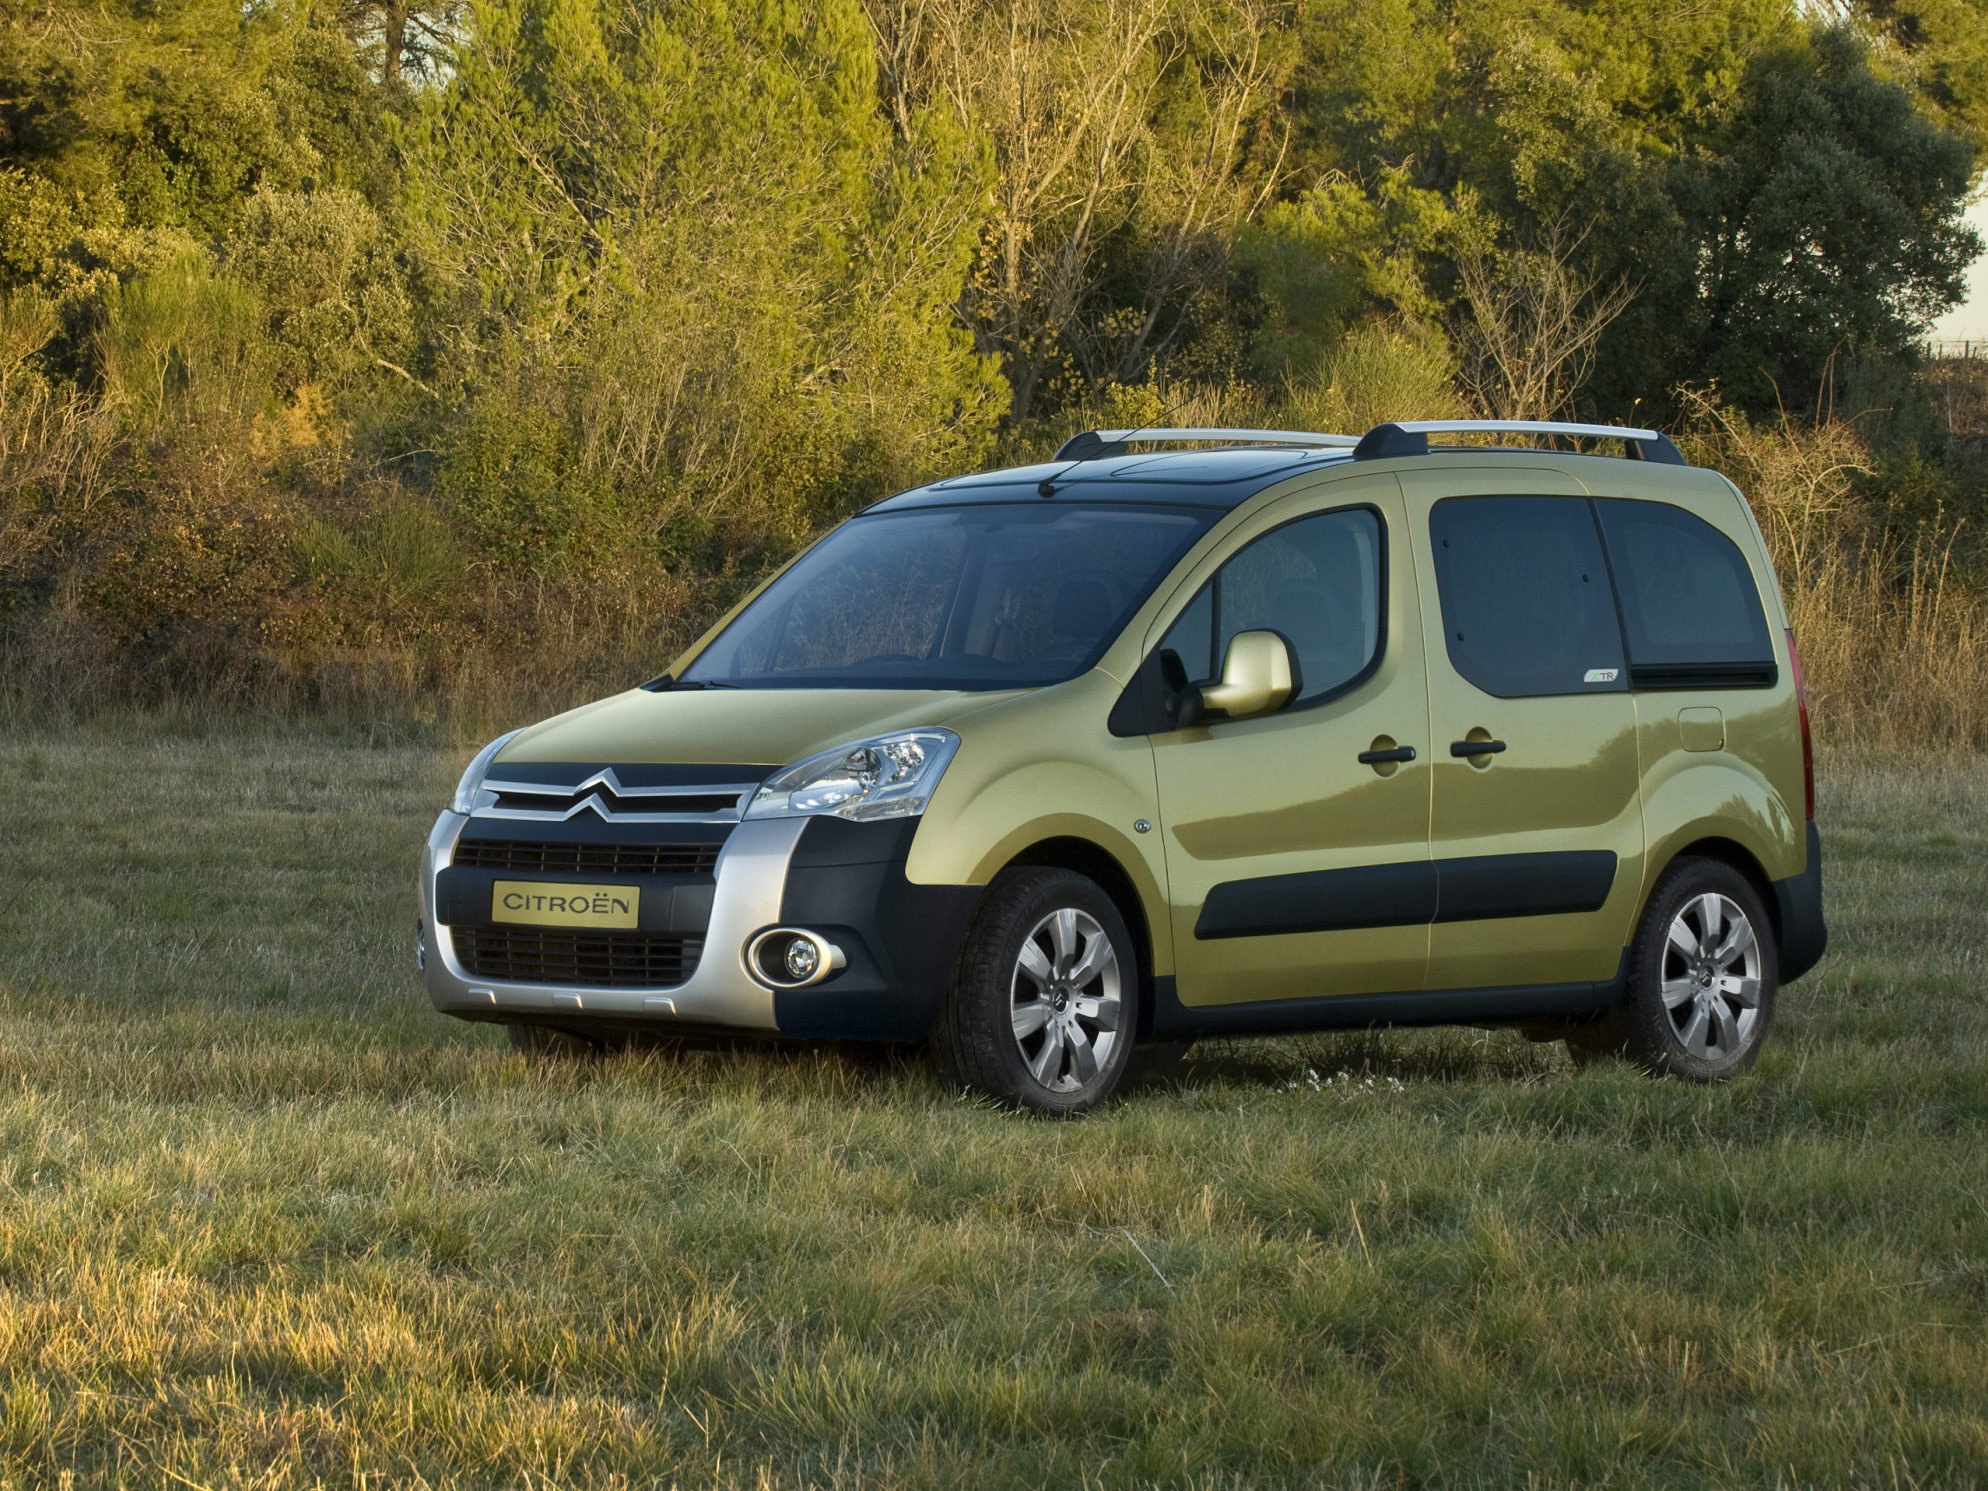 Фото автомобиля Citroen Berlingo минивэн